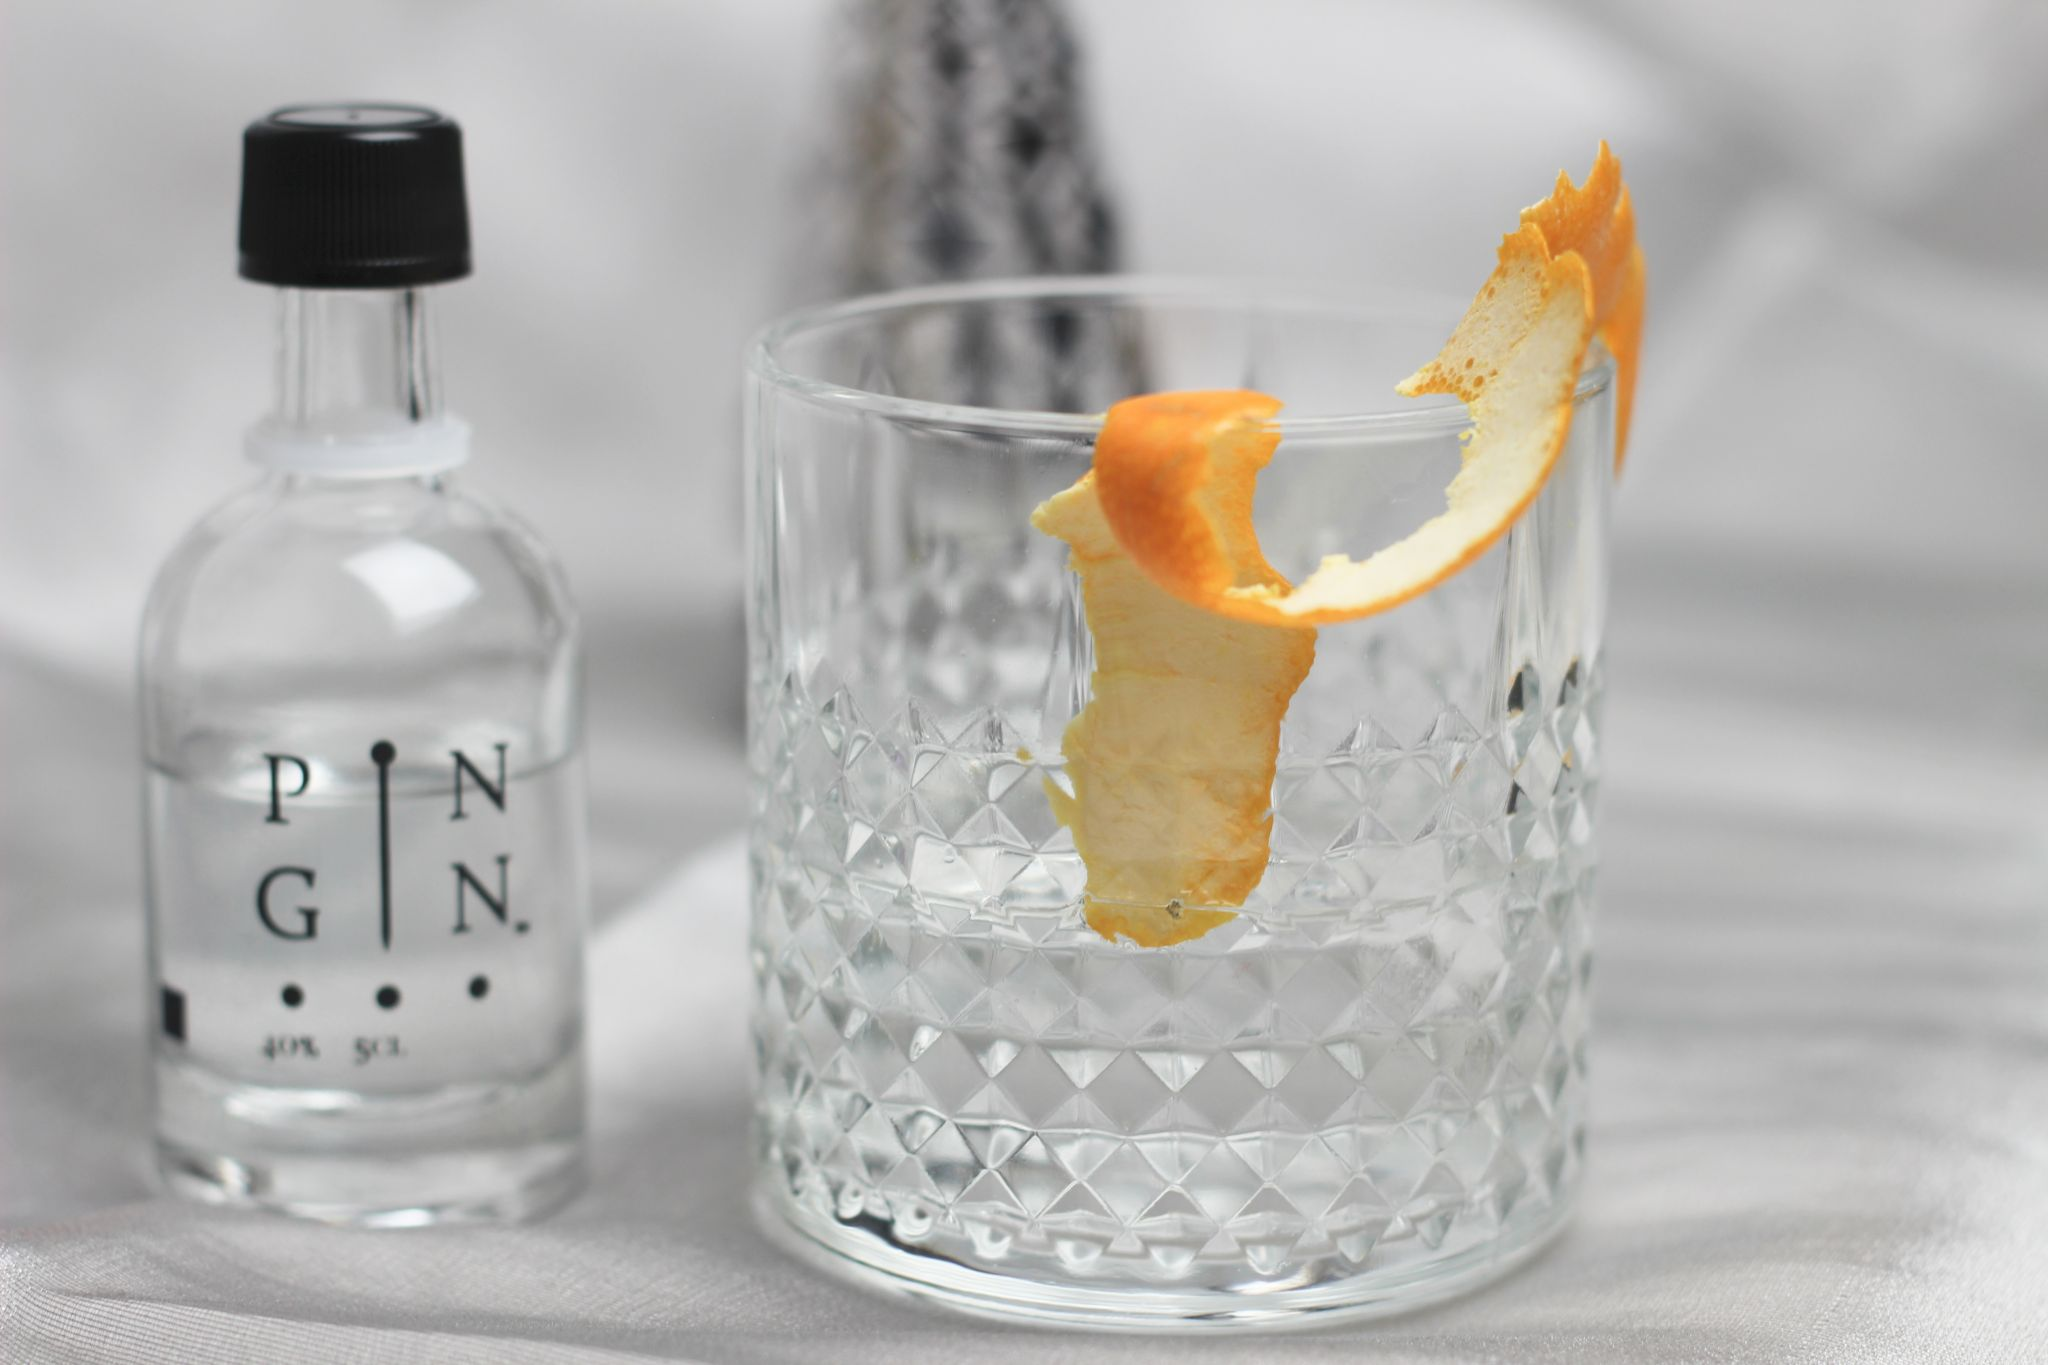 ILoveGin Pin Gin Tonic Orange Peel on Glass